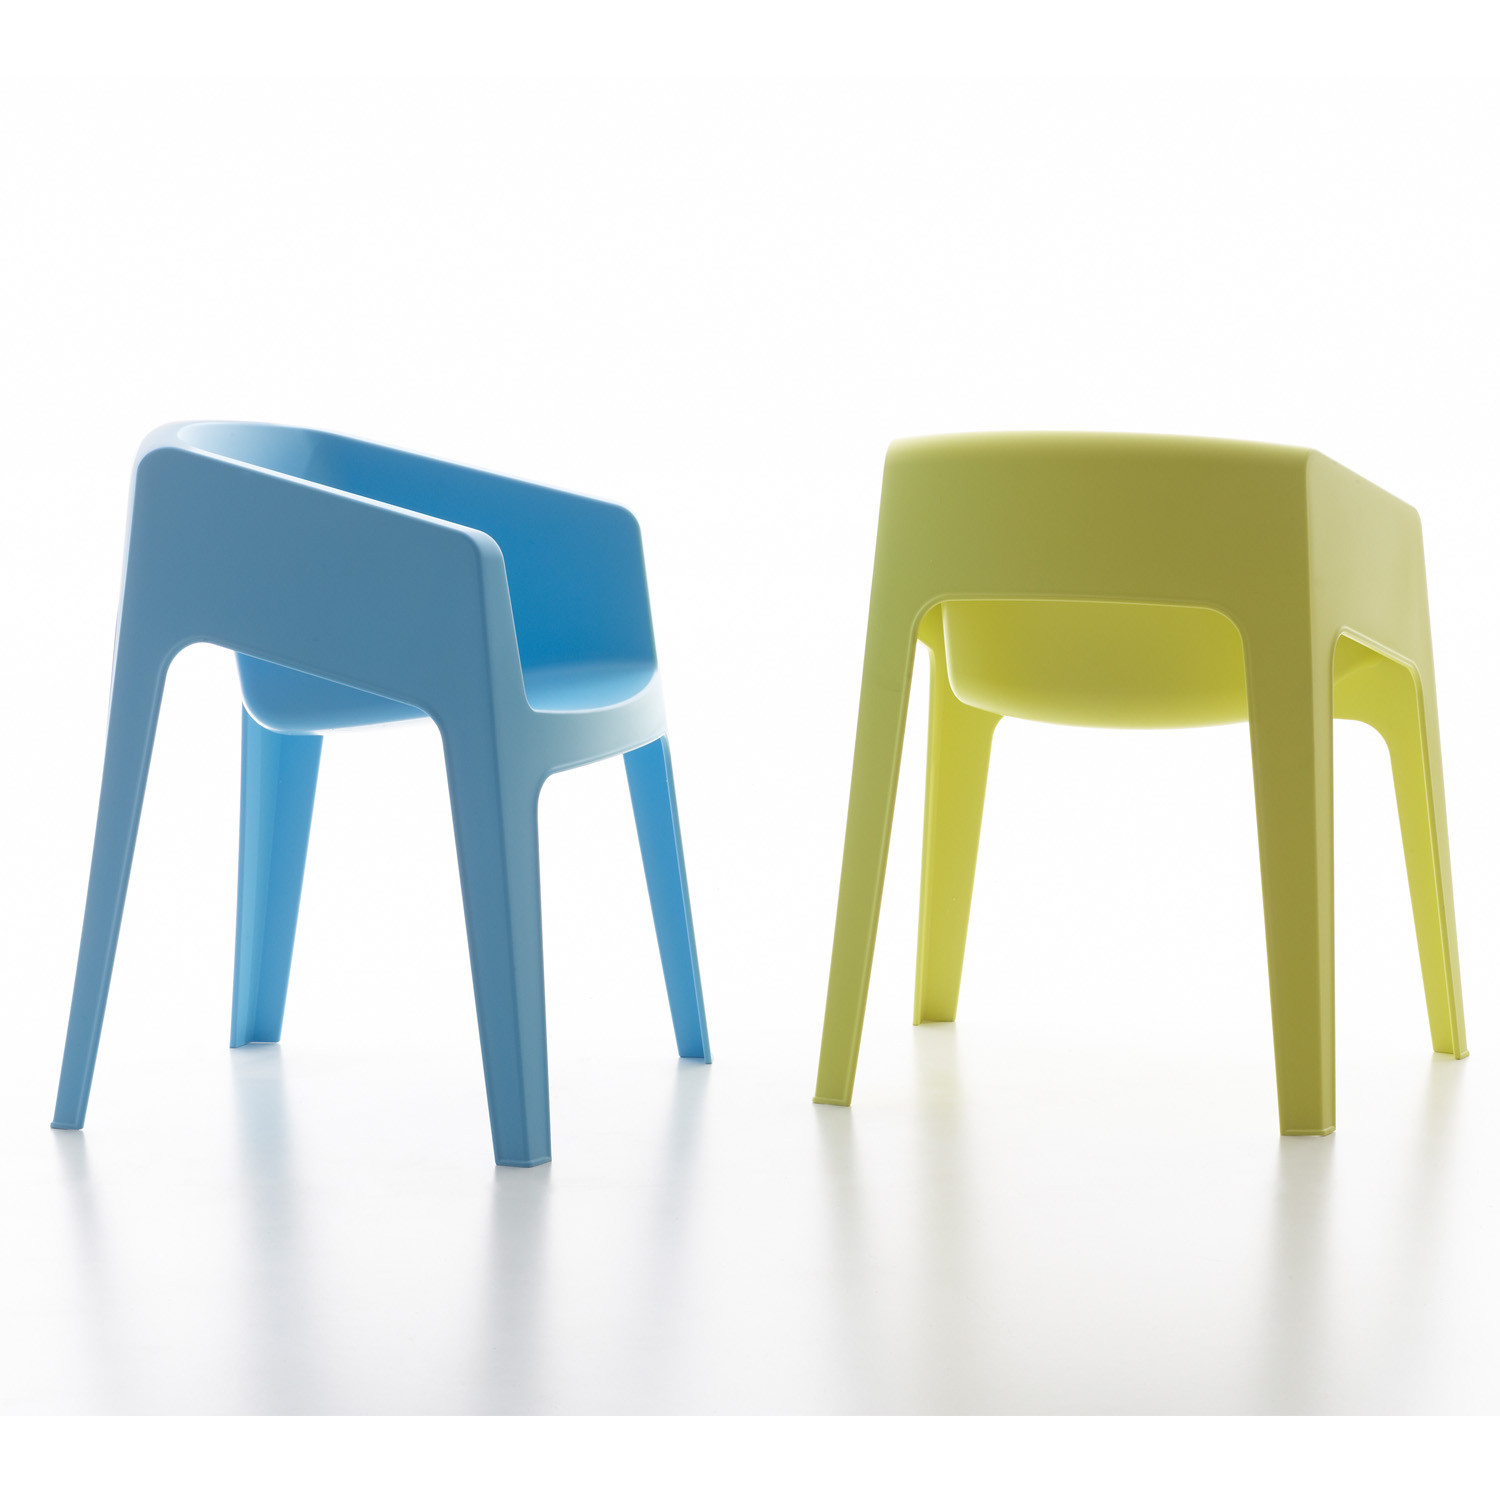 Tototo Chairs